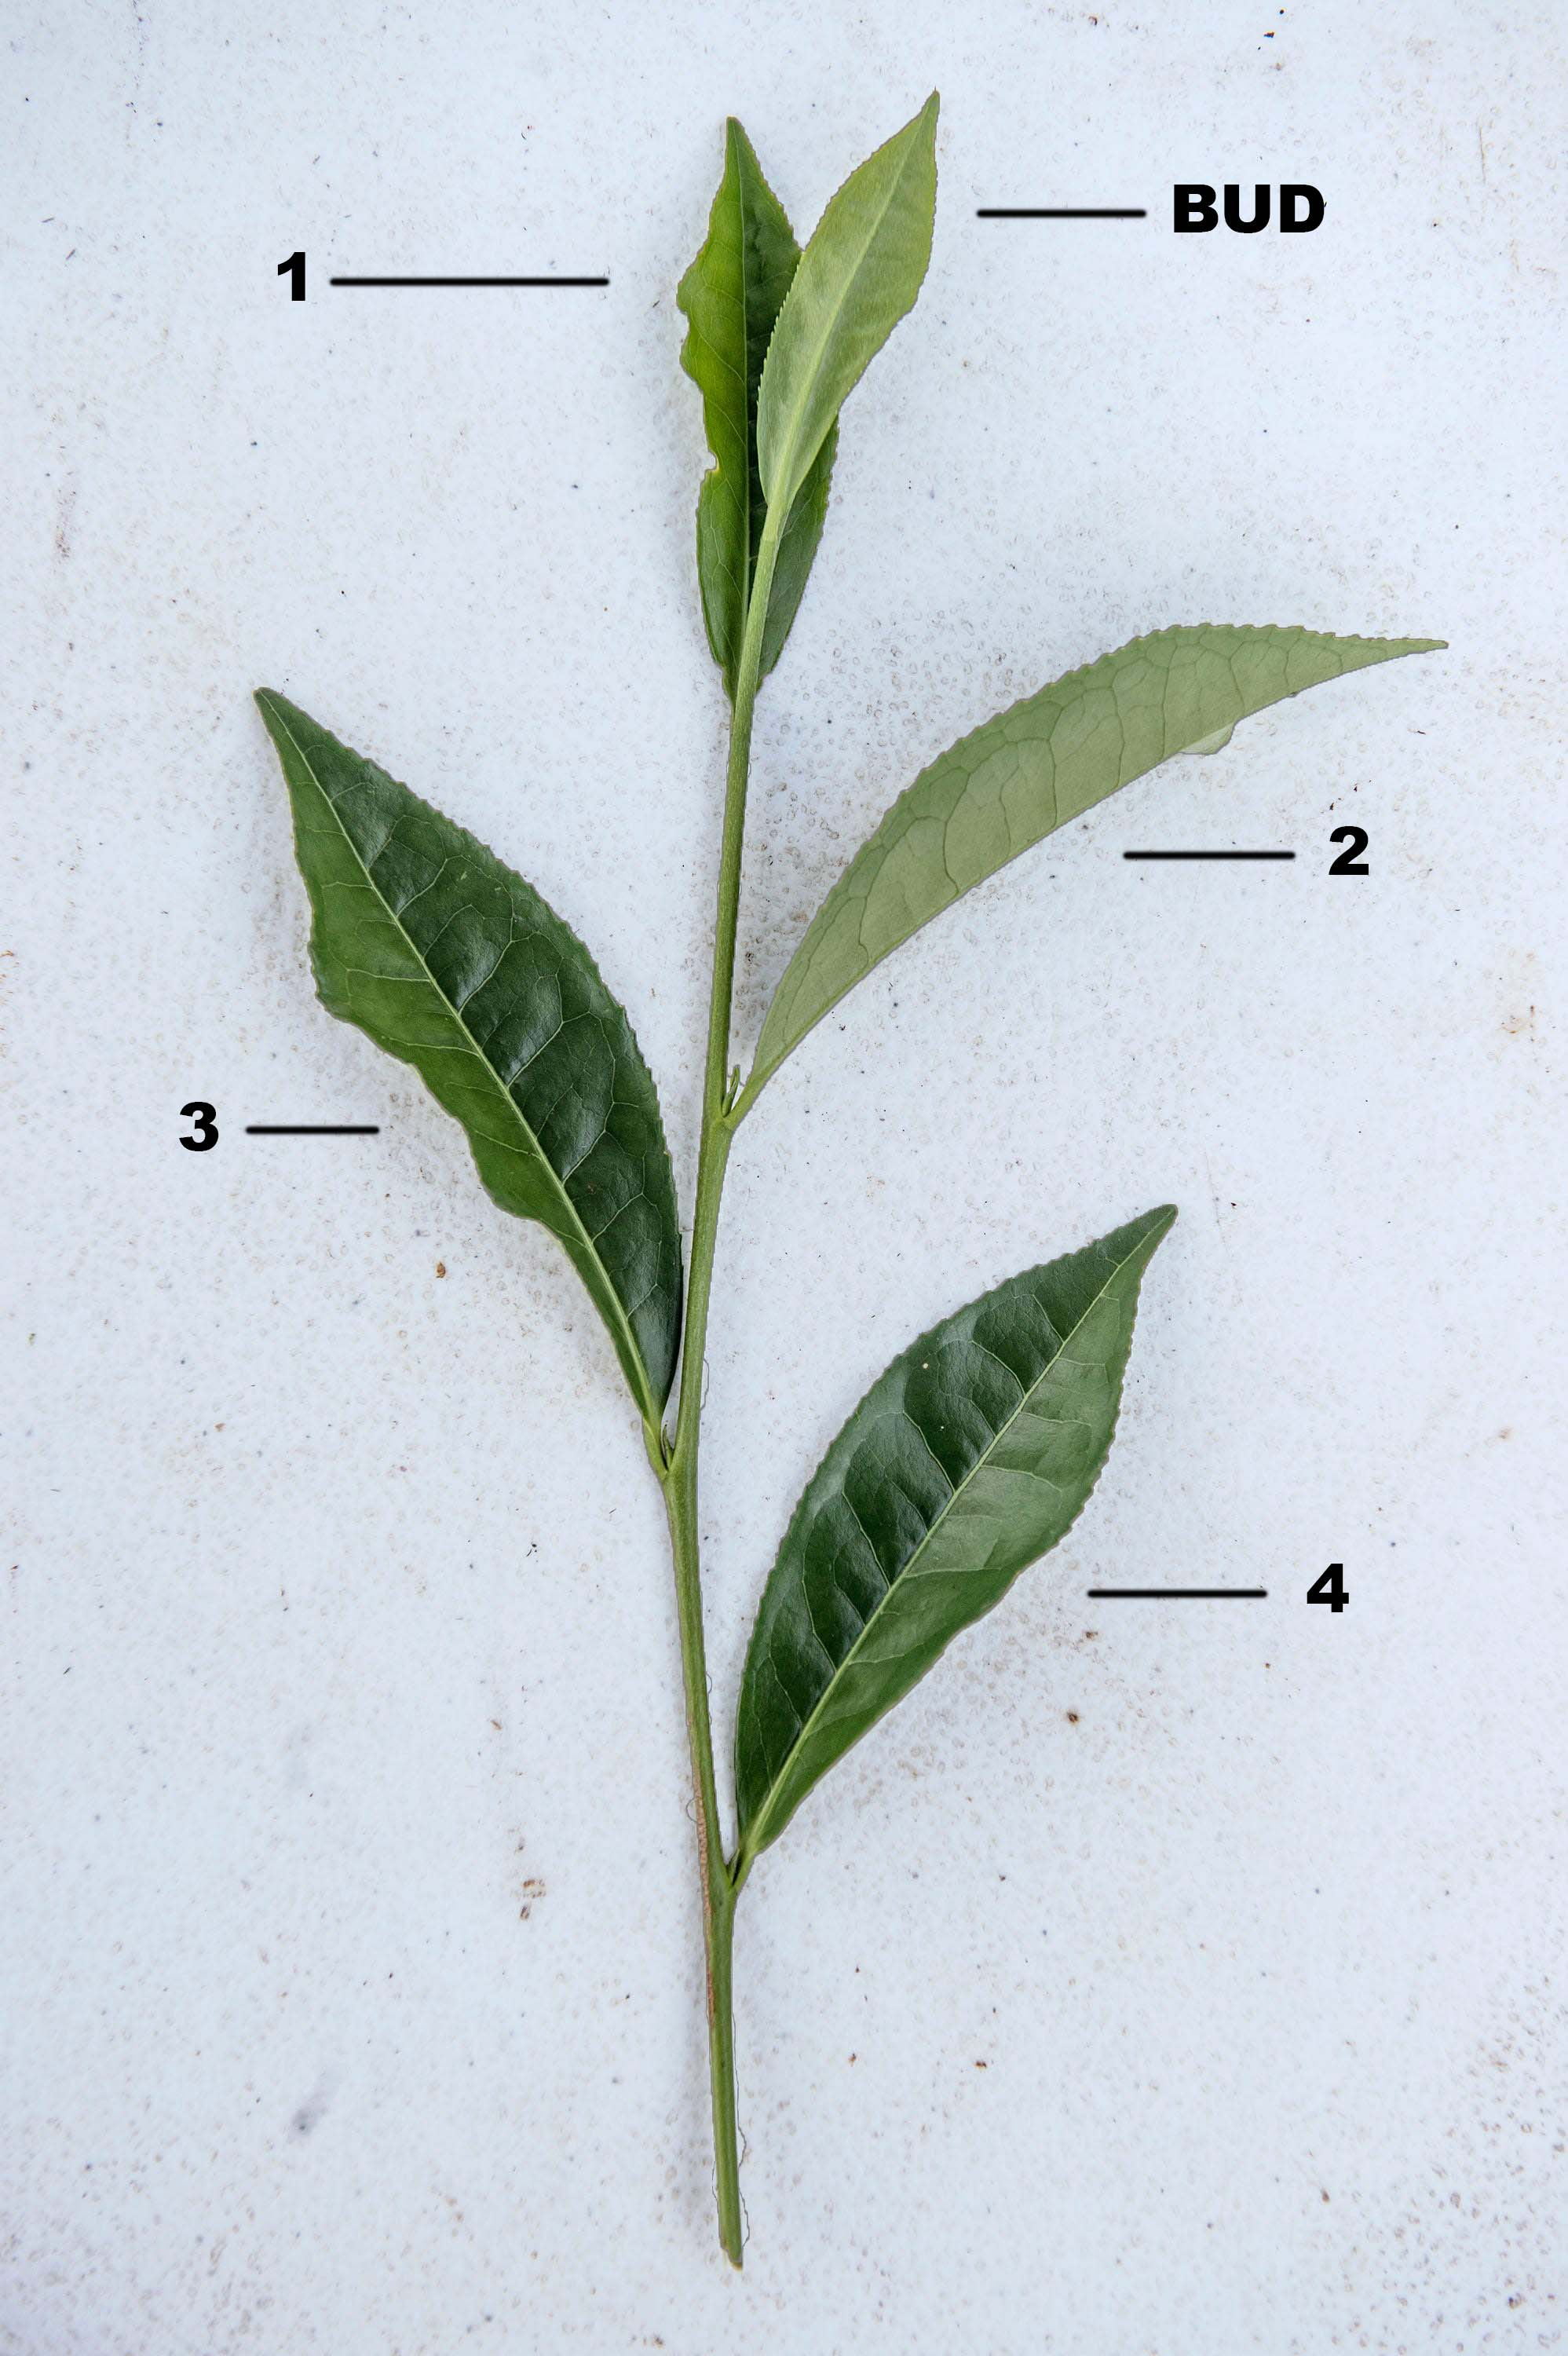 All teas come from the same plant, but different leaves are used for each variety.